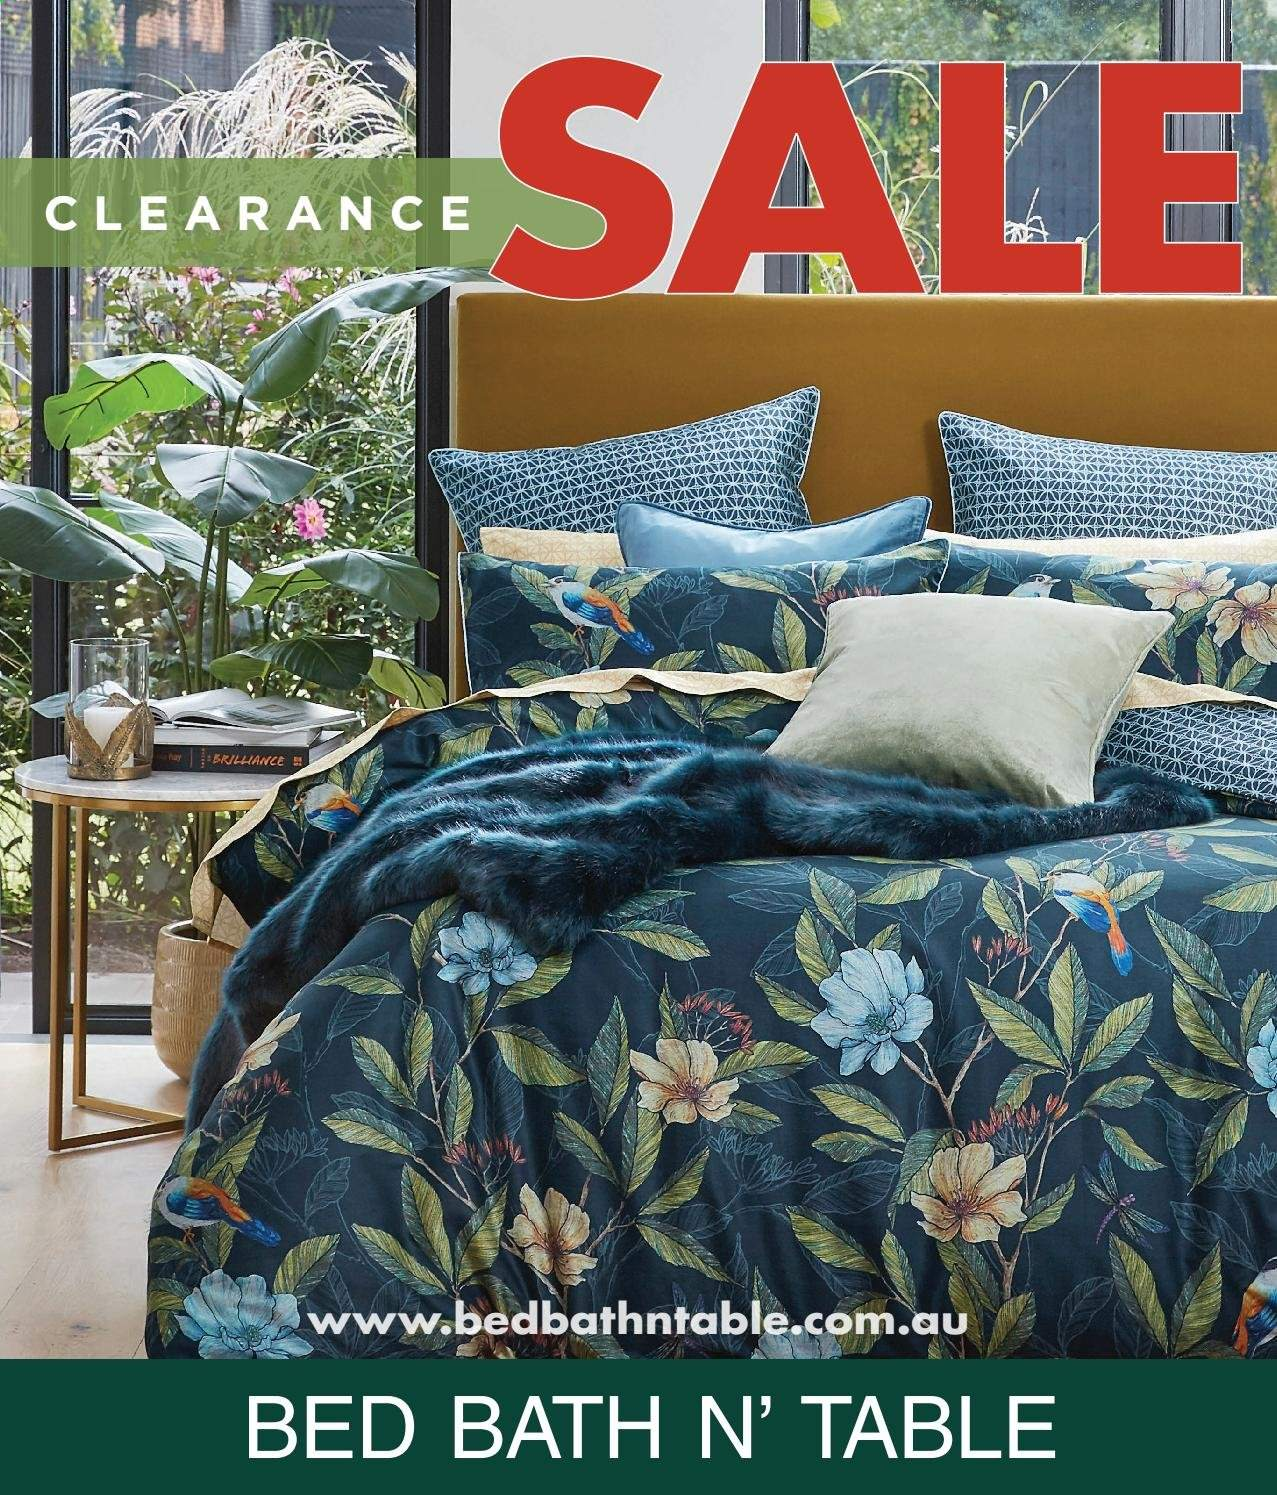 Pleasant Bed Bath N Table Catalogue And Weekly Specials 21 6 2019 Home Interior And Landscaping Ponolsignezvosmurscom